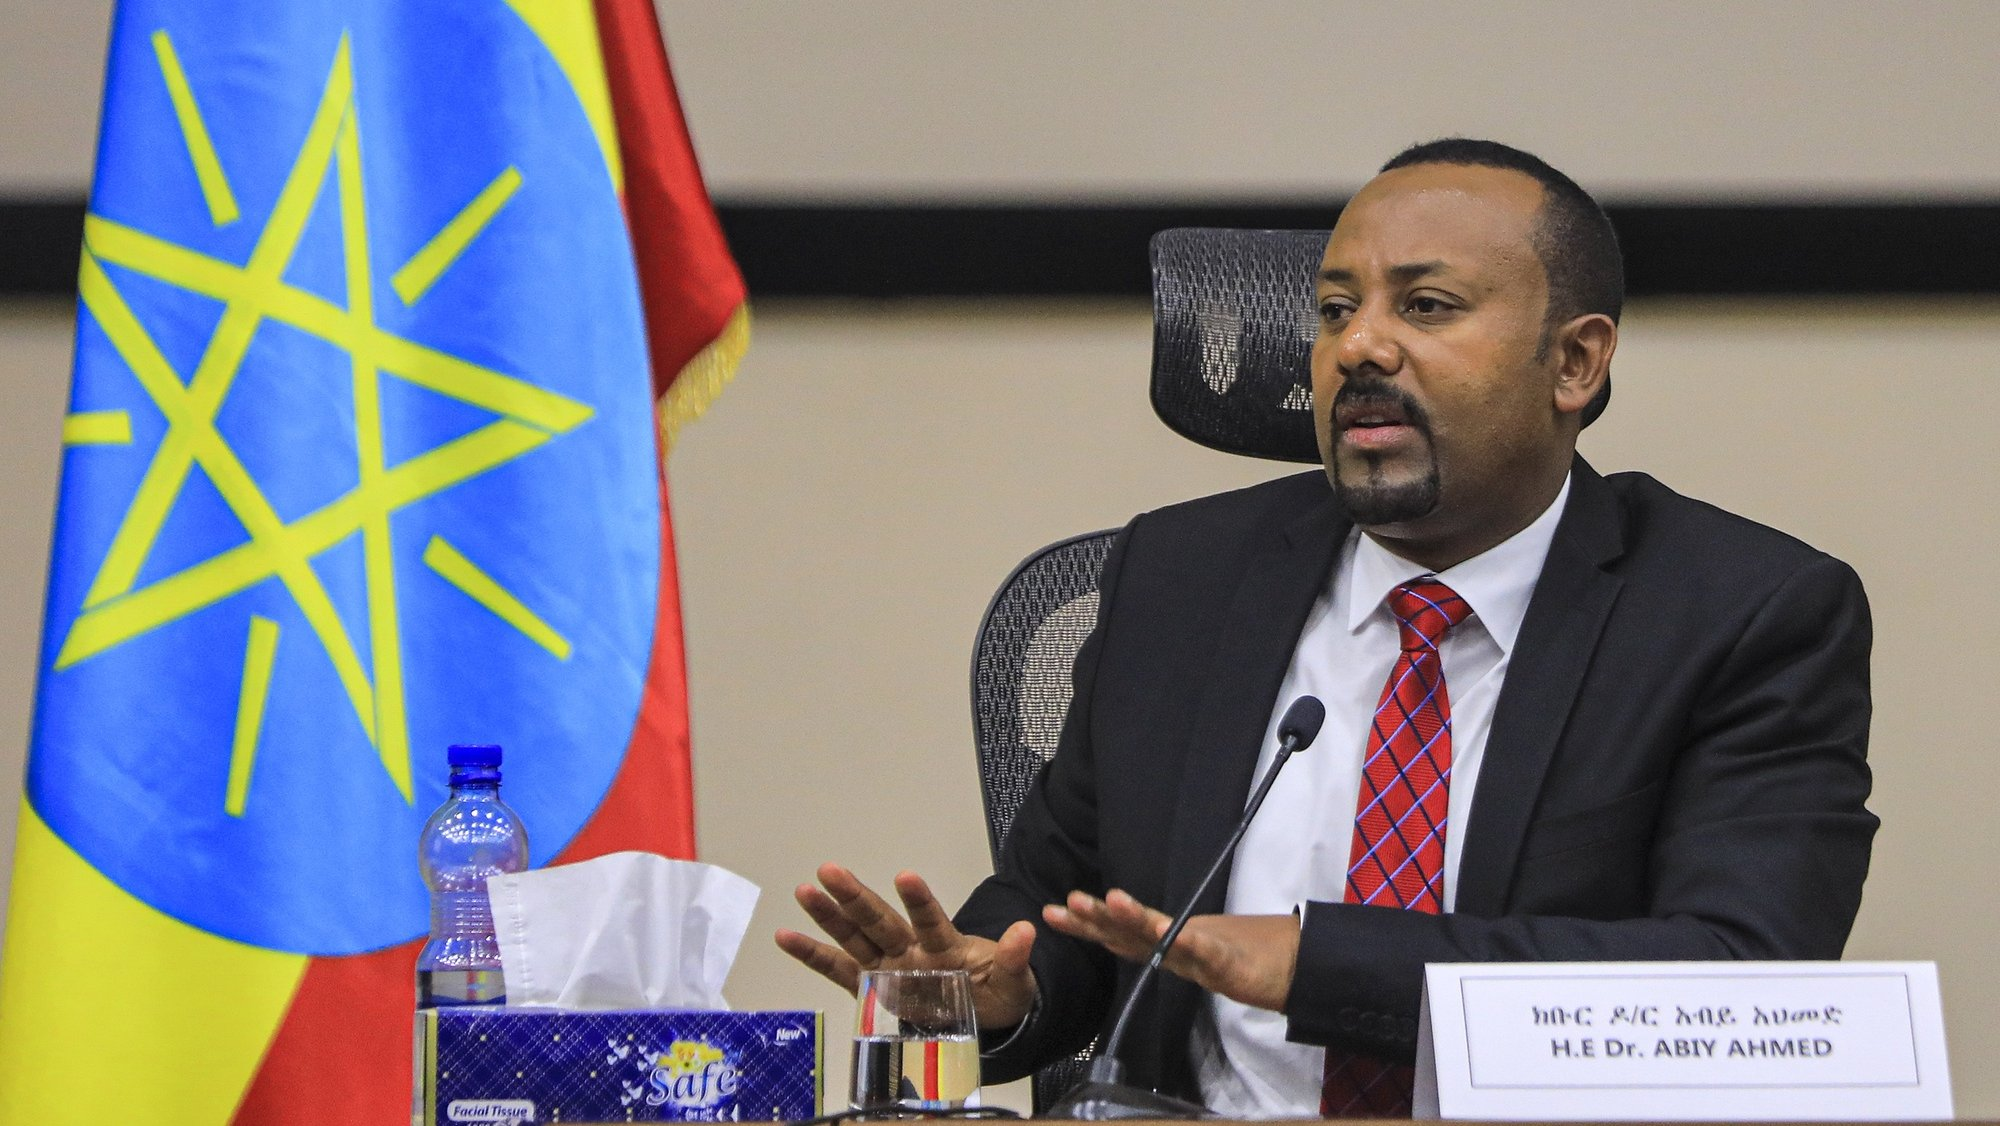 epaselect epa08852858 Ethiopian Prime Minister Abiy Ahmed speaks during a question and answer session in parliament, Addis Ababa, Ethiopia 30 November 2020. Ethiopia's military intervention in the northern Tigray region comes after Tigray People's Liberation Front (TPLF) forces allegedly attacked an army base on 03 November 2020 sparking weeks of unrest with over 40,000 refugees fleeing to Sudan.  EPA/STR